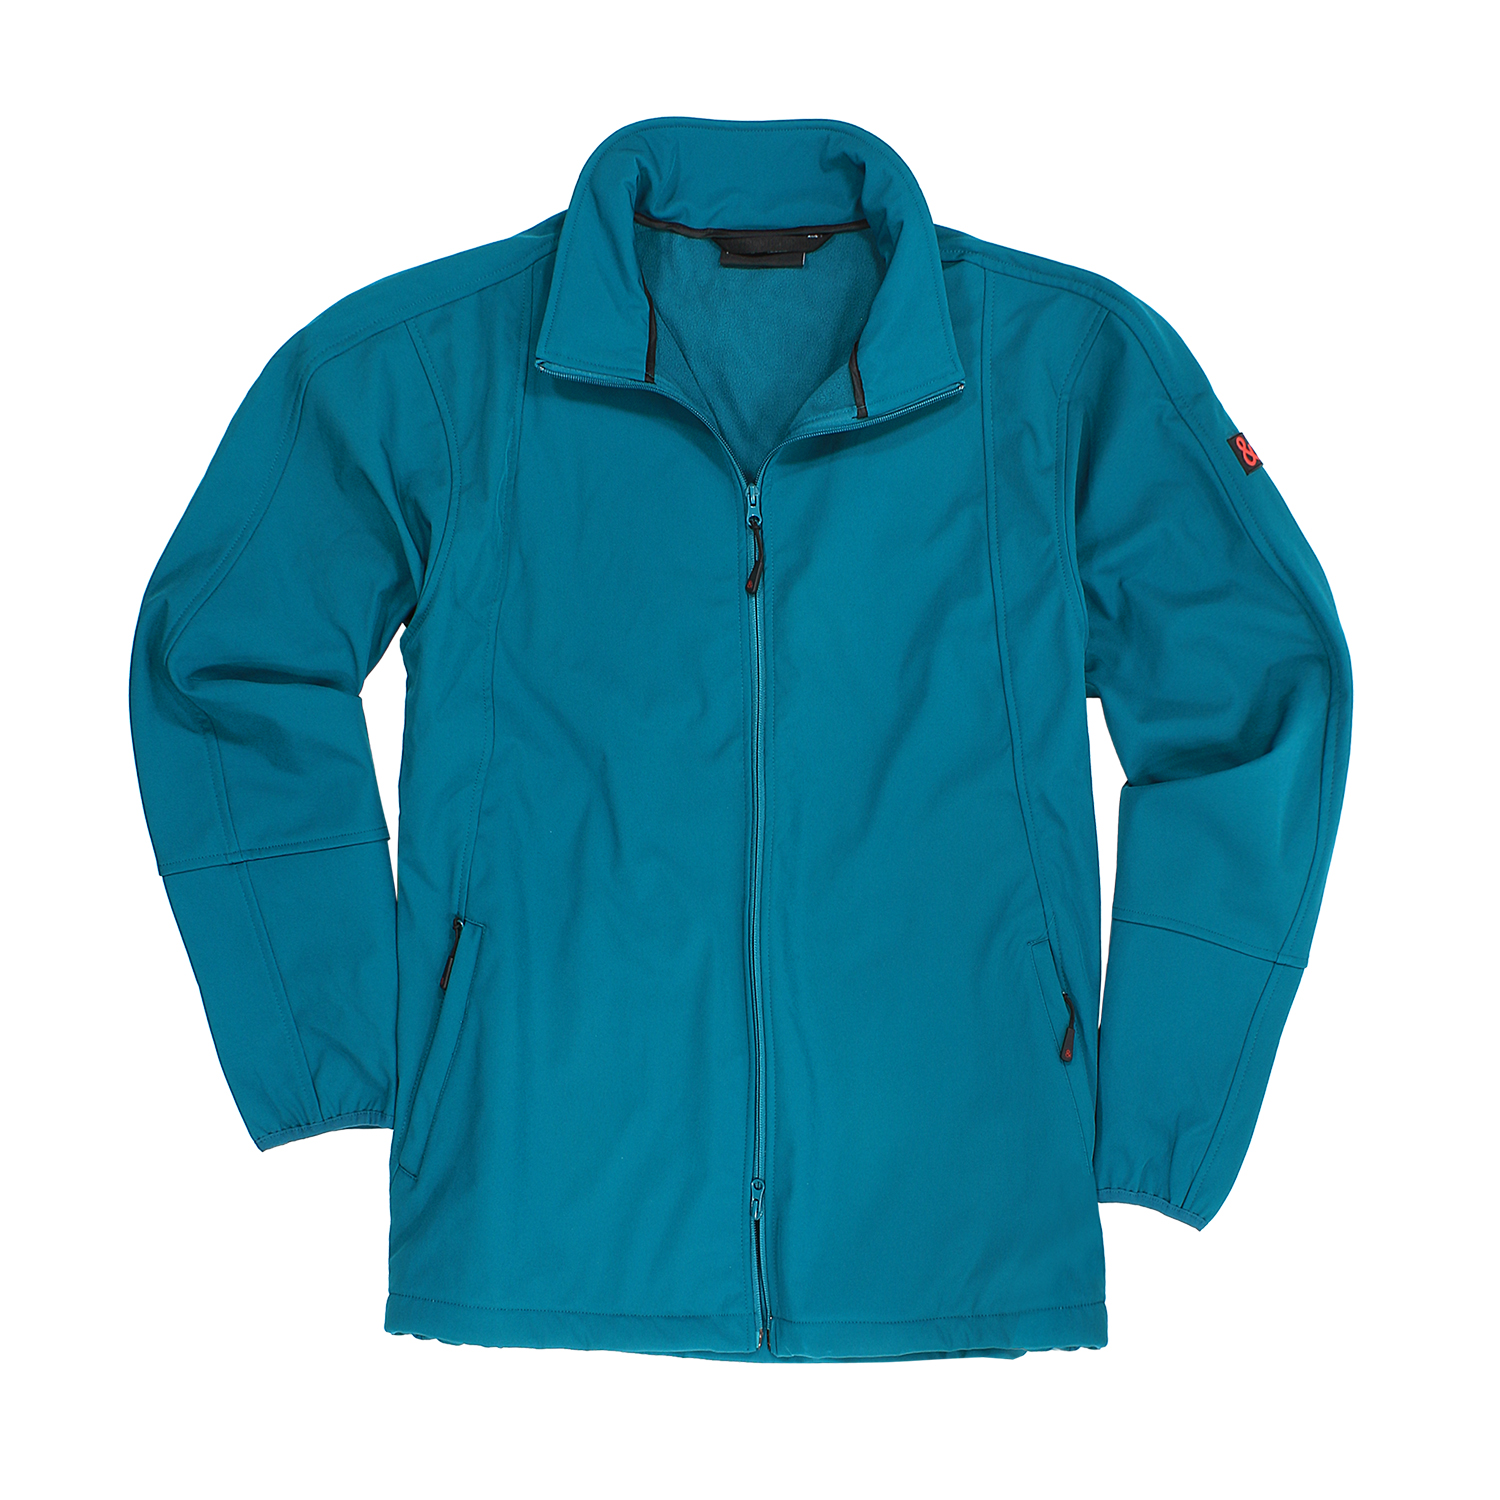 Detail Image to Softshell jacket in petrol by Marc&Mark in extra large sizes up to 10XL